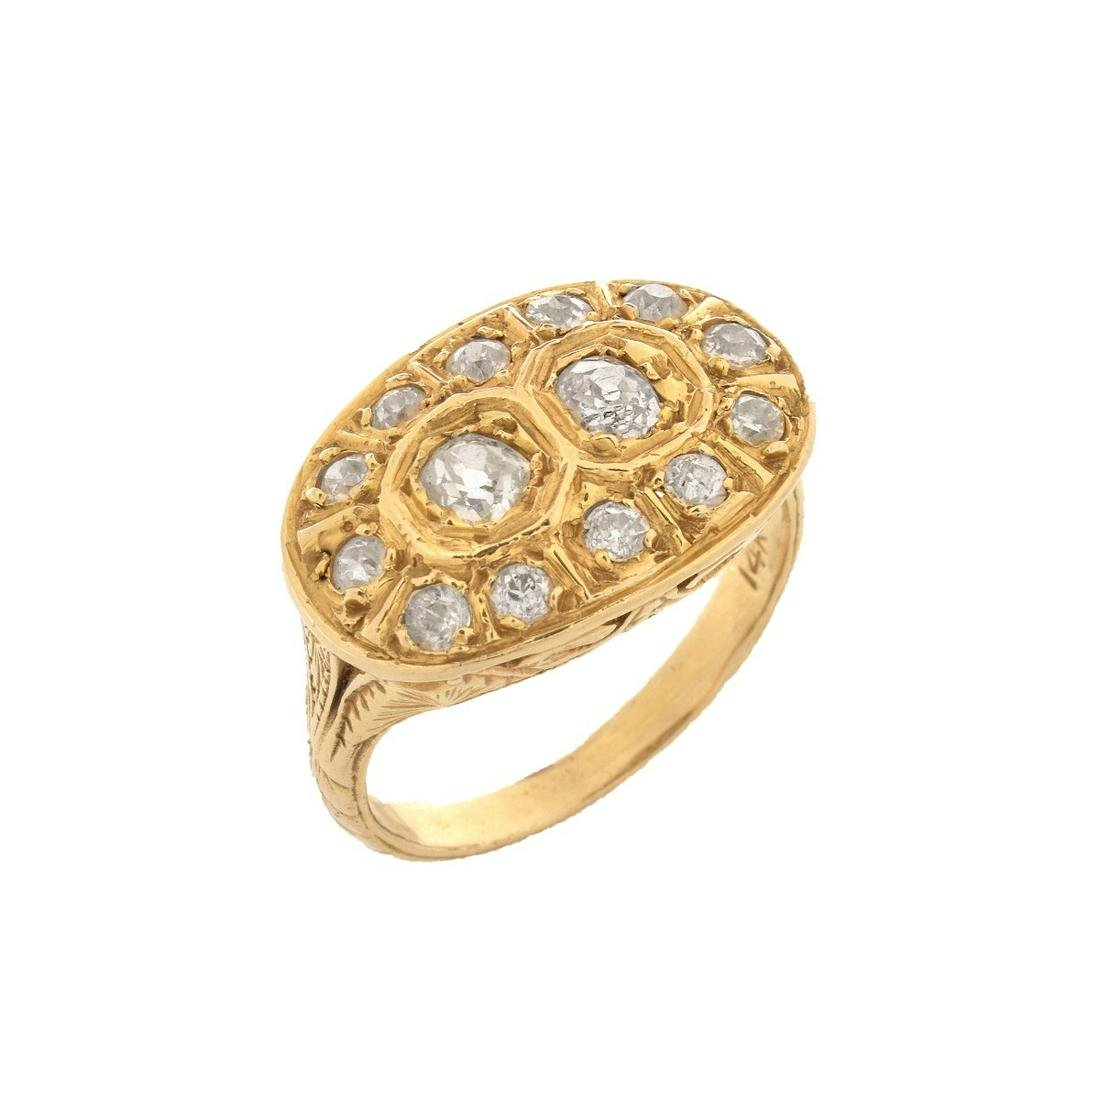 Antique Diamond and 14K Ring